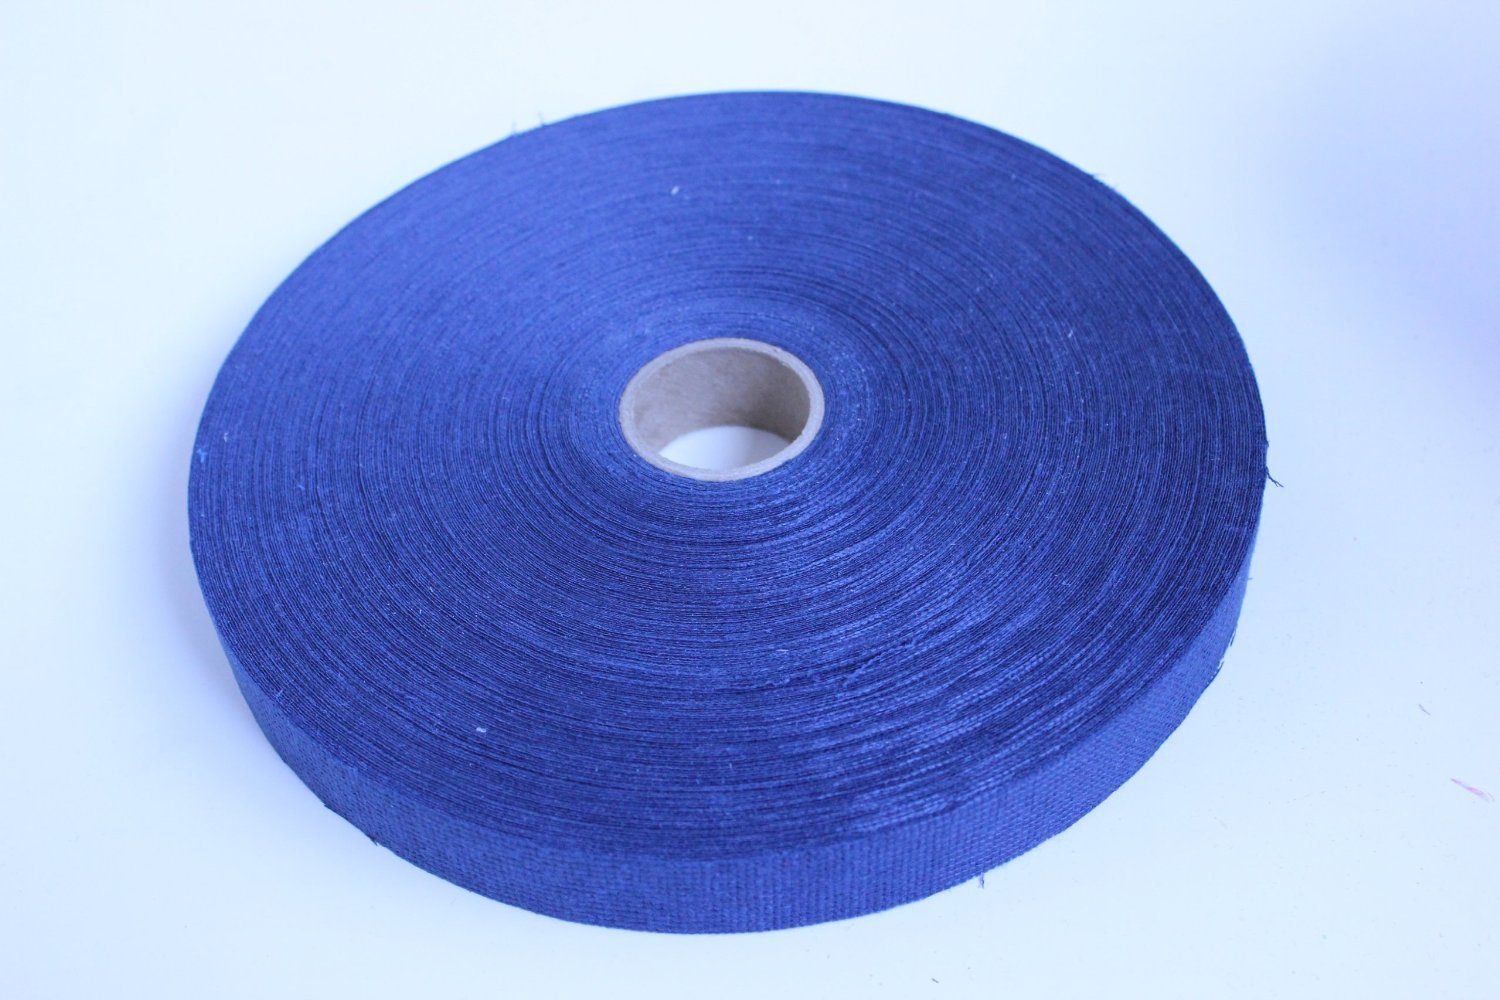 Blue (673) Binding Tape (2 rolls) by Bond Products Inc